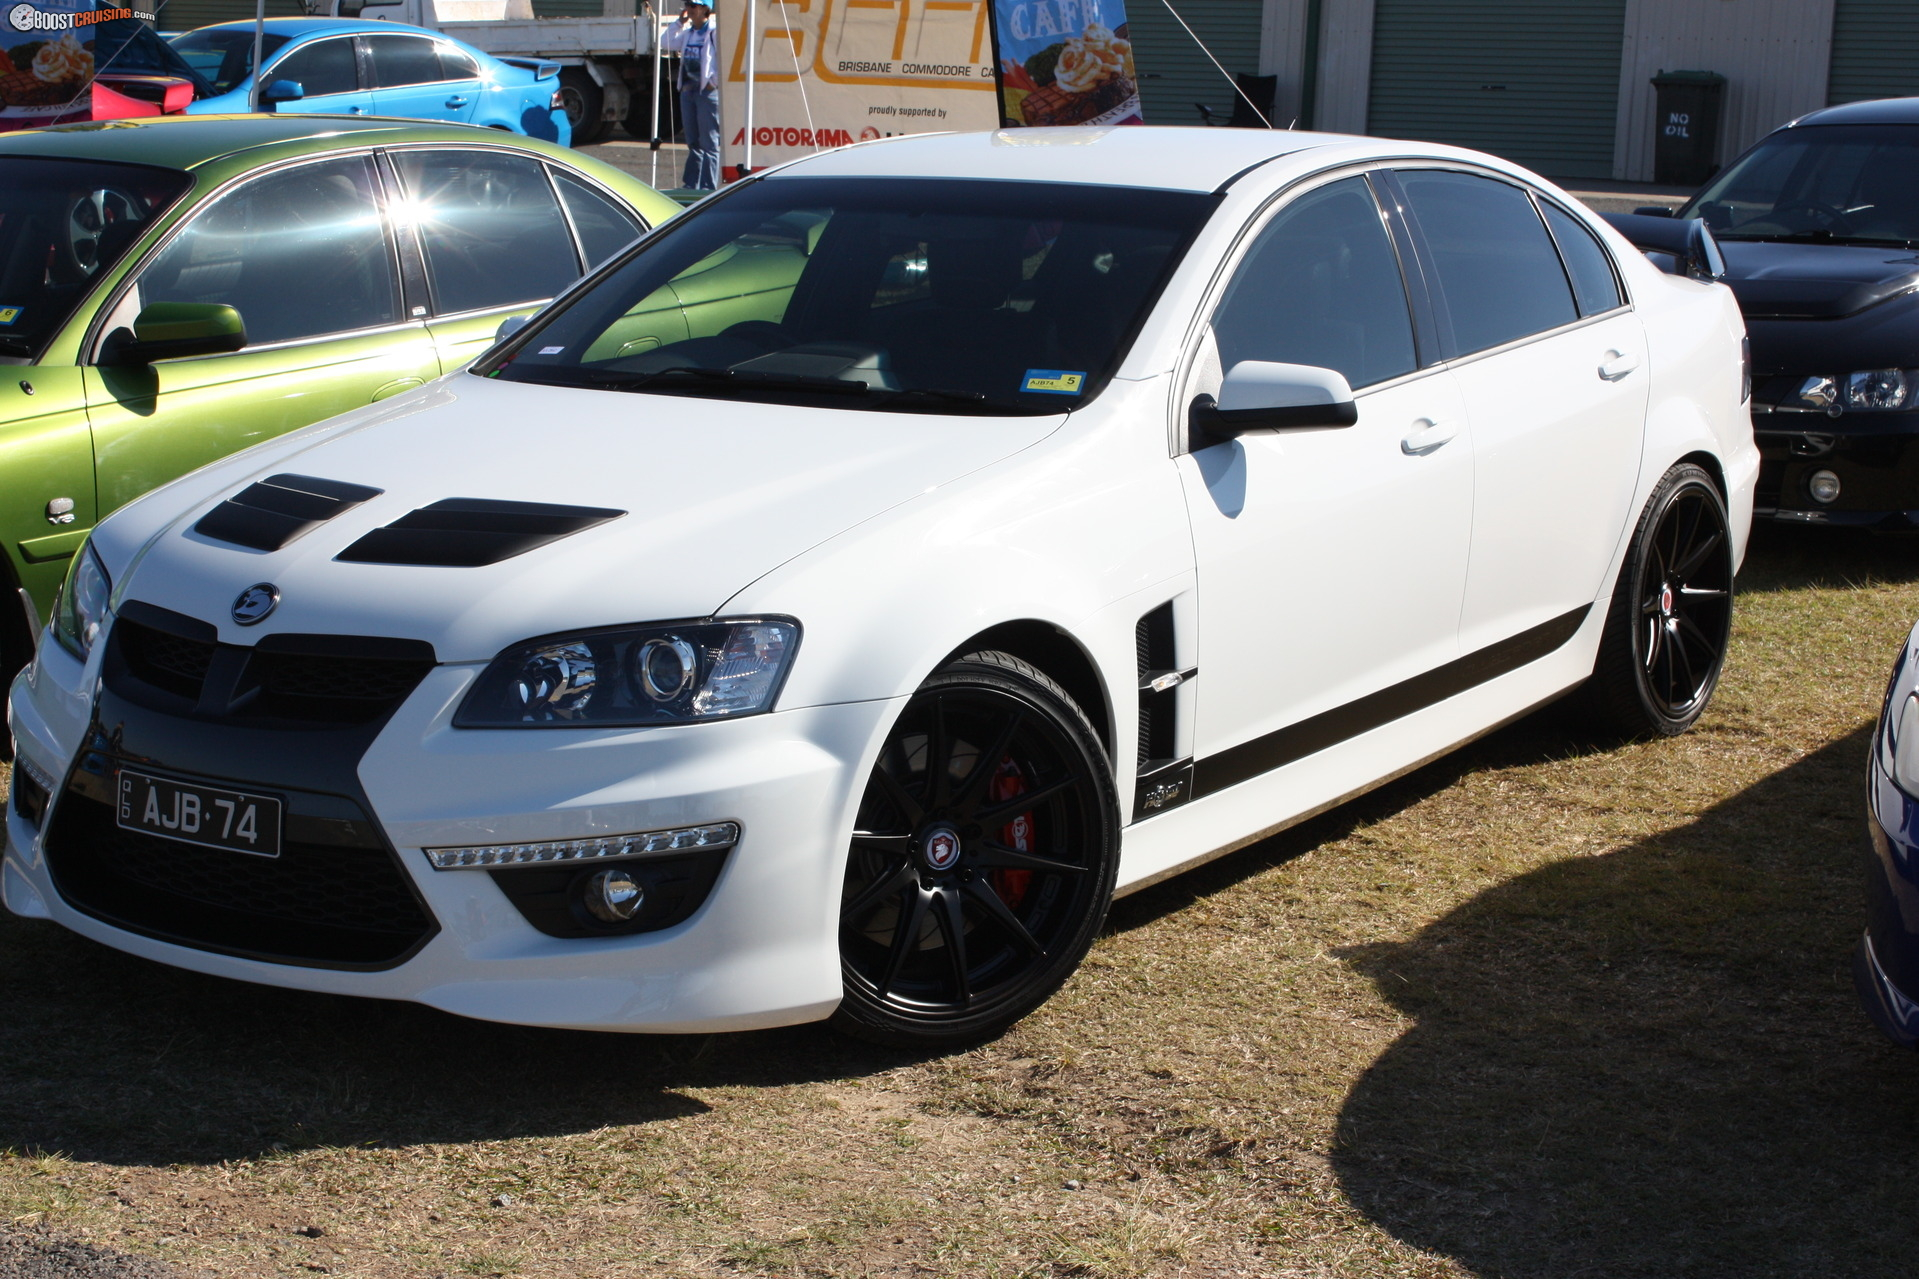 Hsv clubsport photo - 3